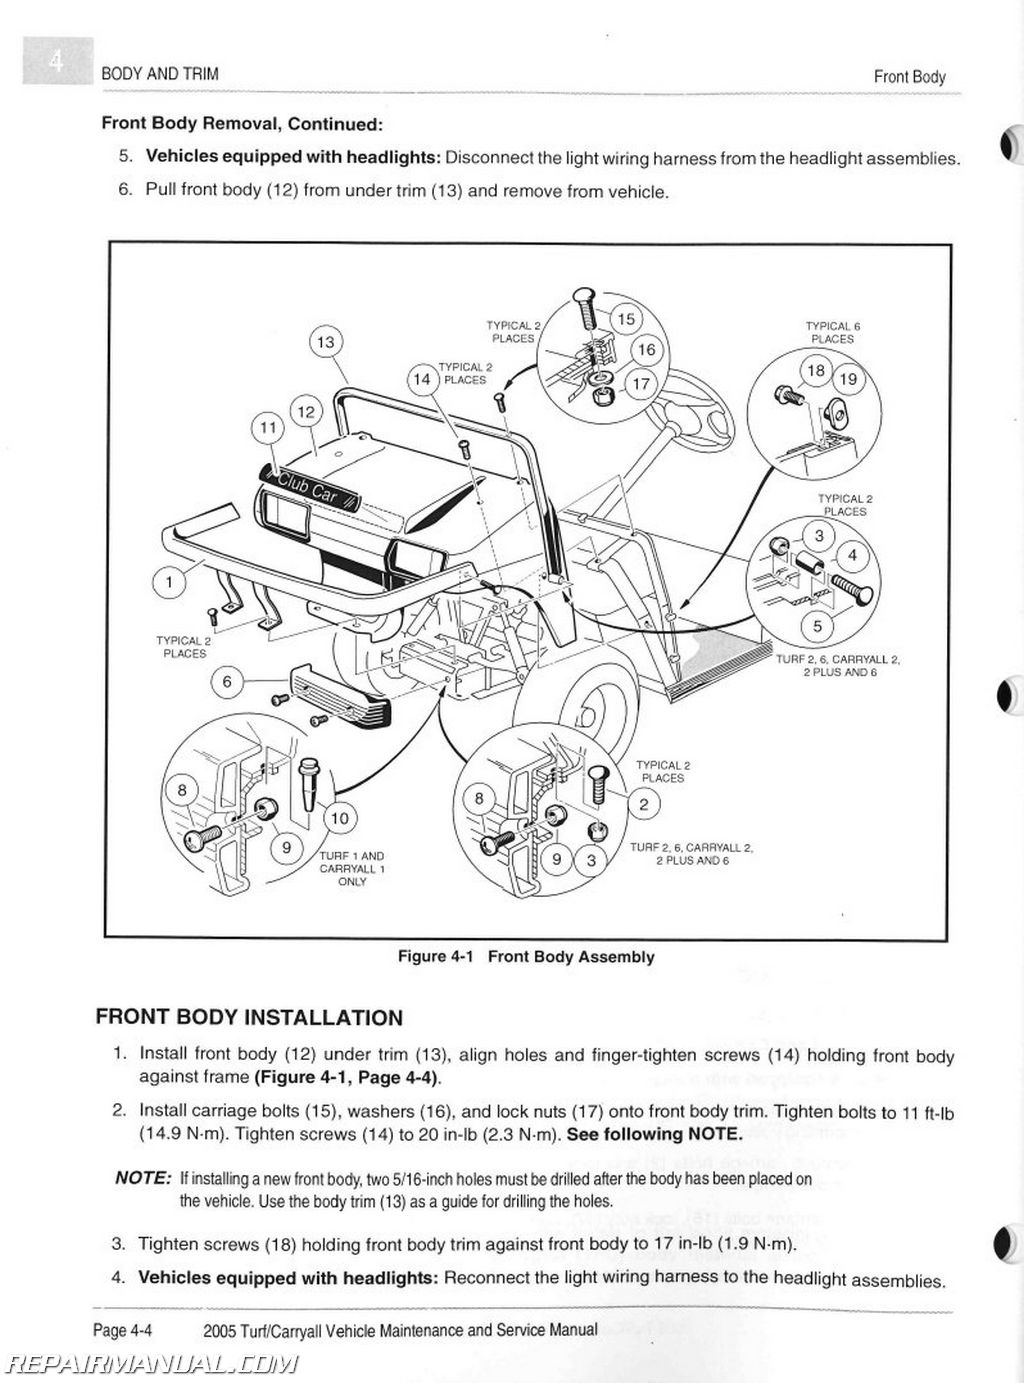 Club Car Turf 1 Wiring Diagram Books Of Carryall 6 Get Free Image About